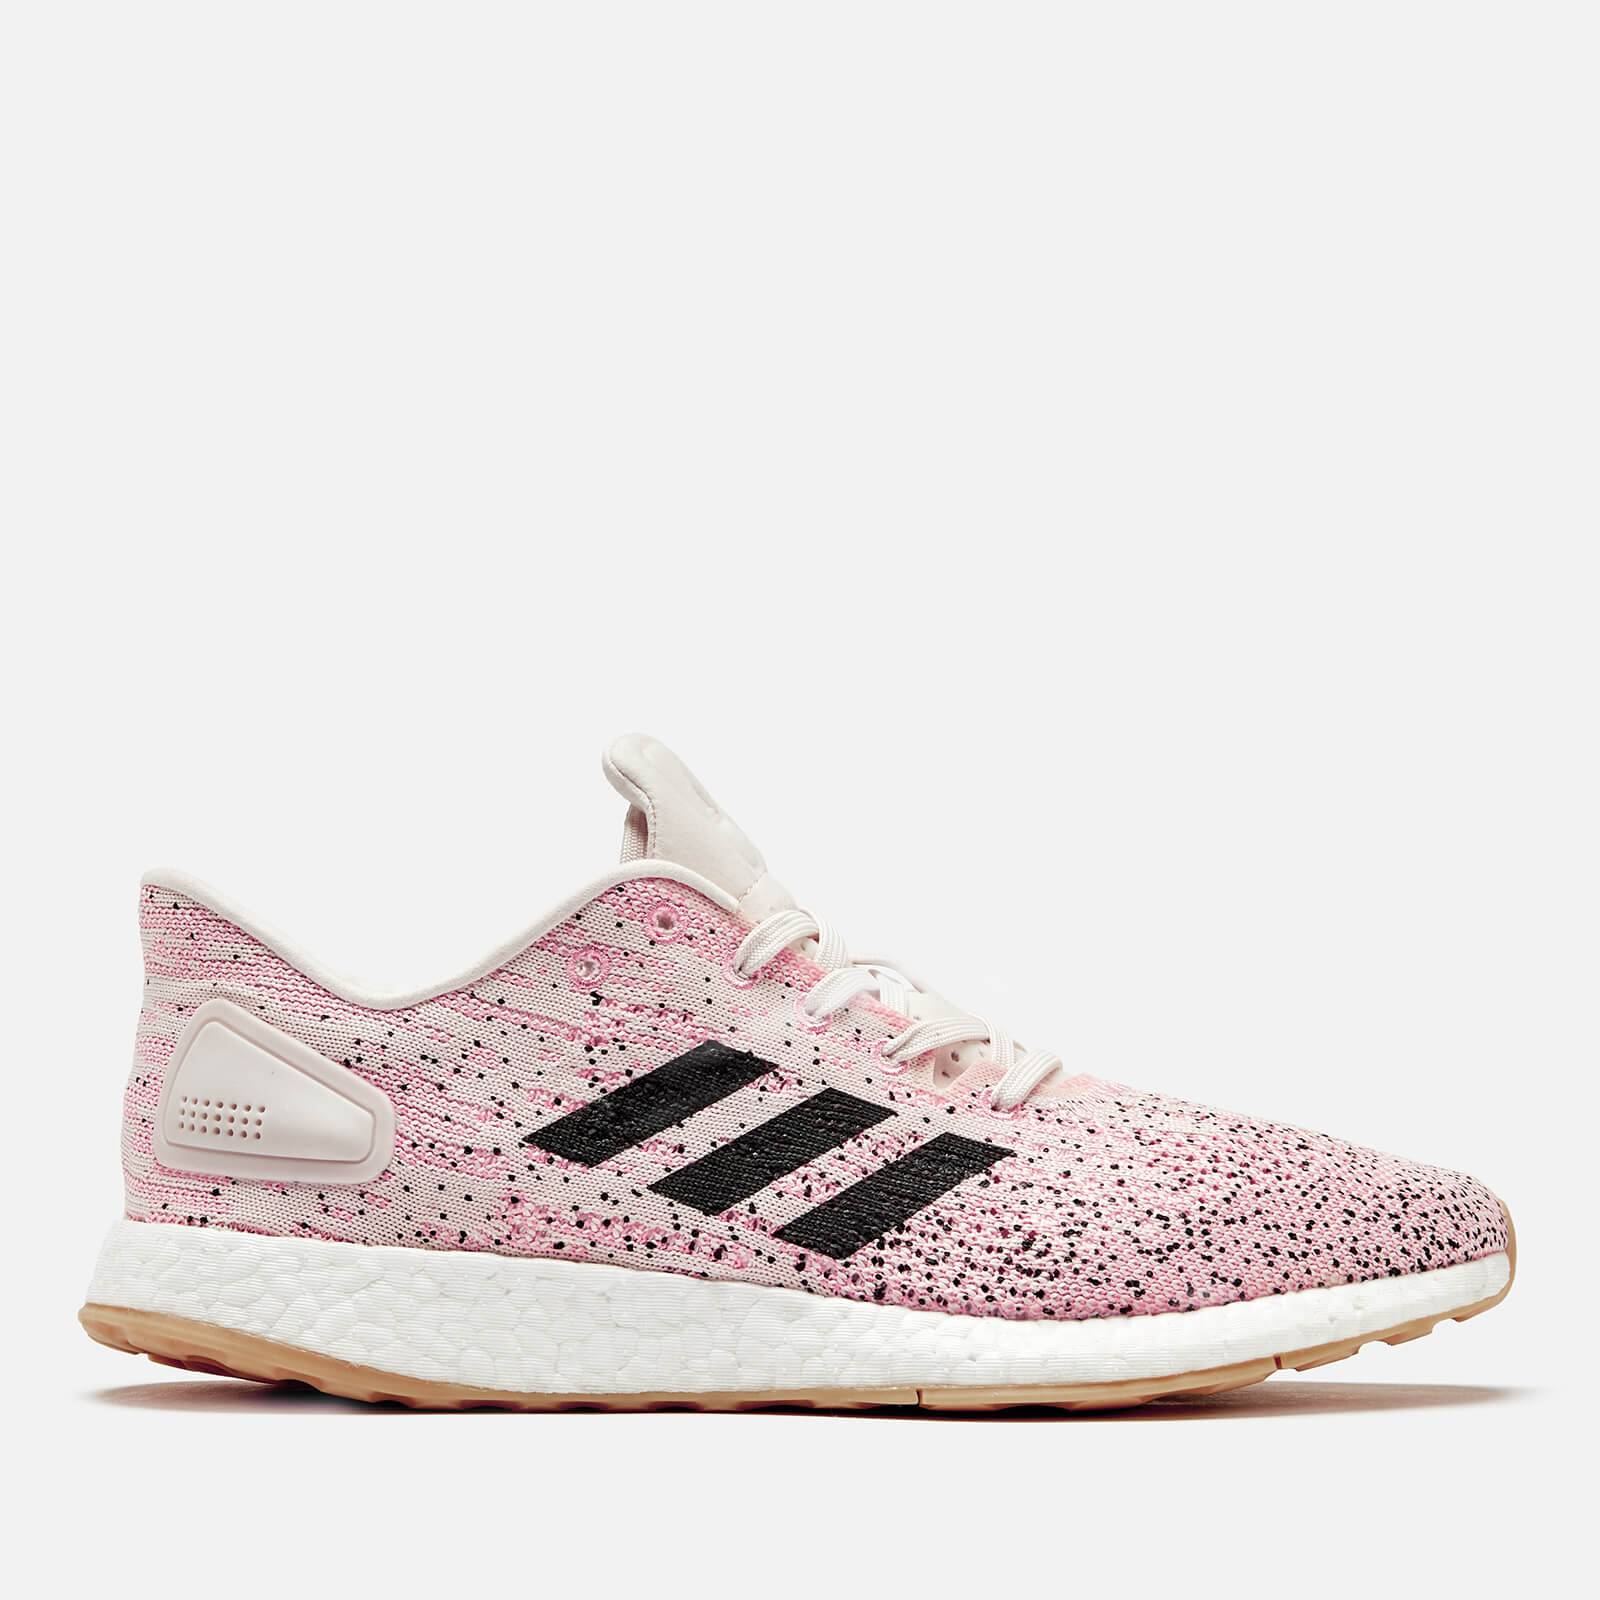 adidas Women's Pure Boost DPR Trainers - True Pink - UK 8 - Pink